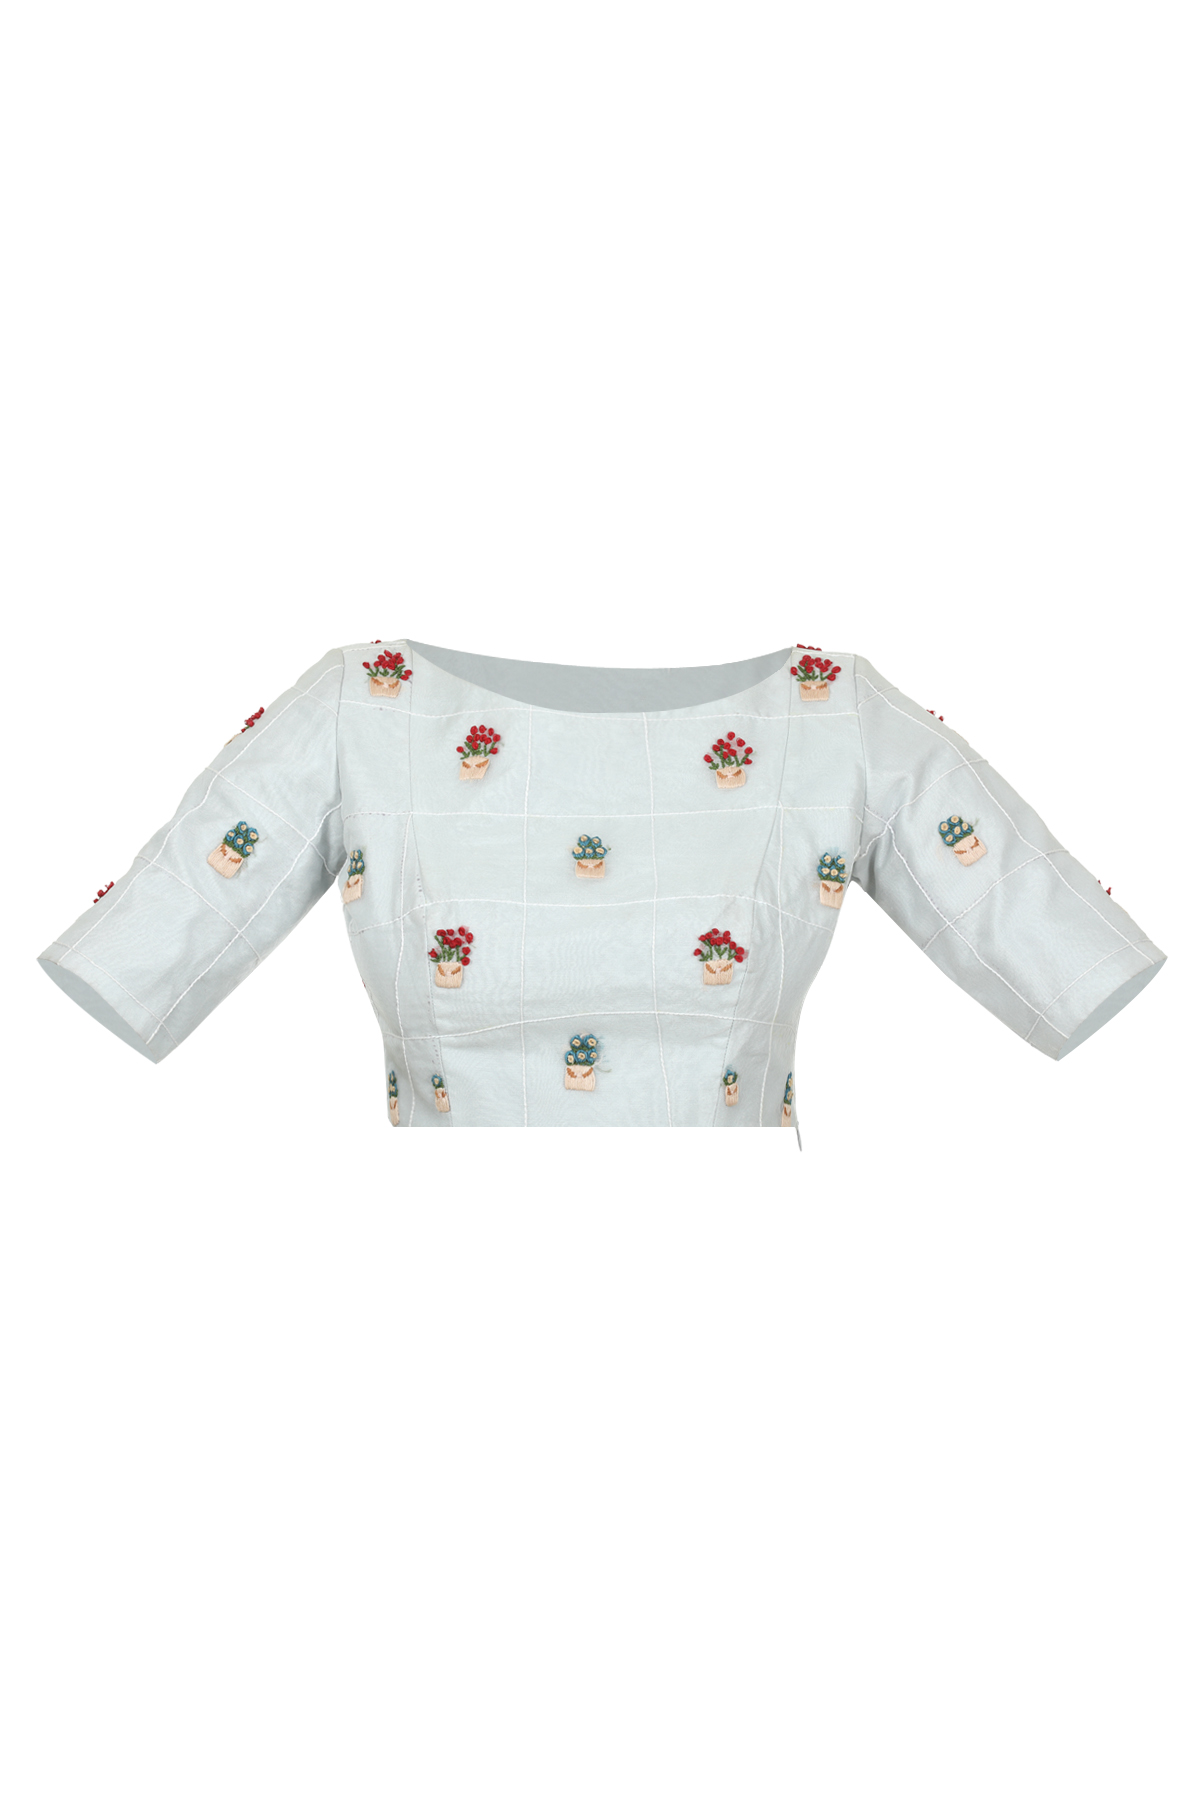 Organza pot embroidery blouse